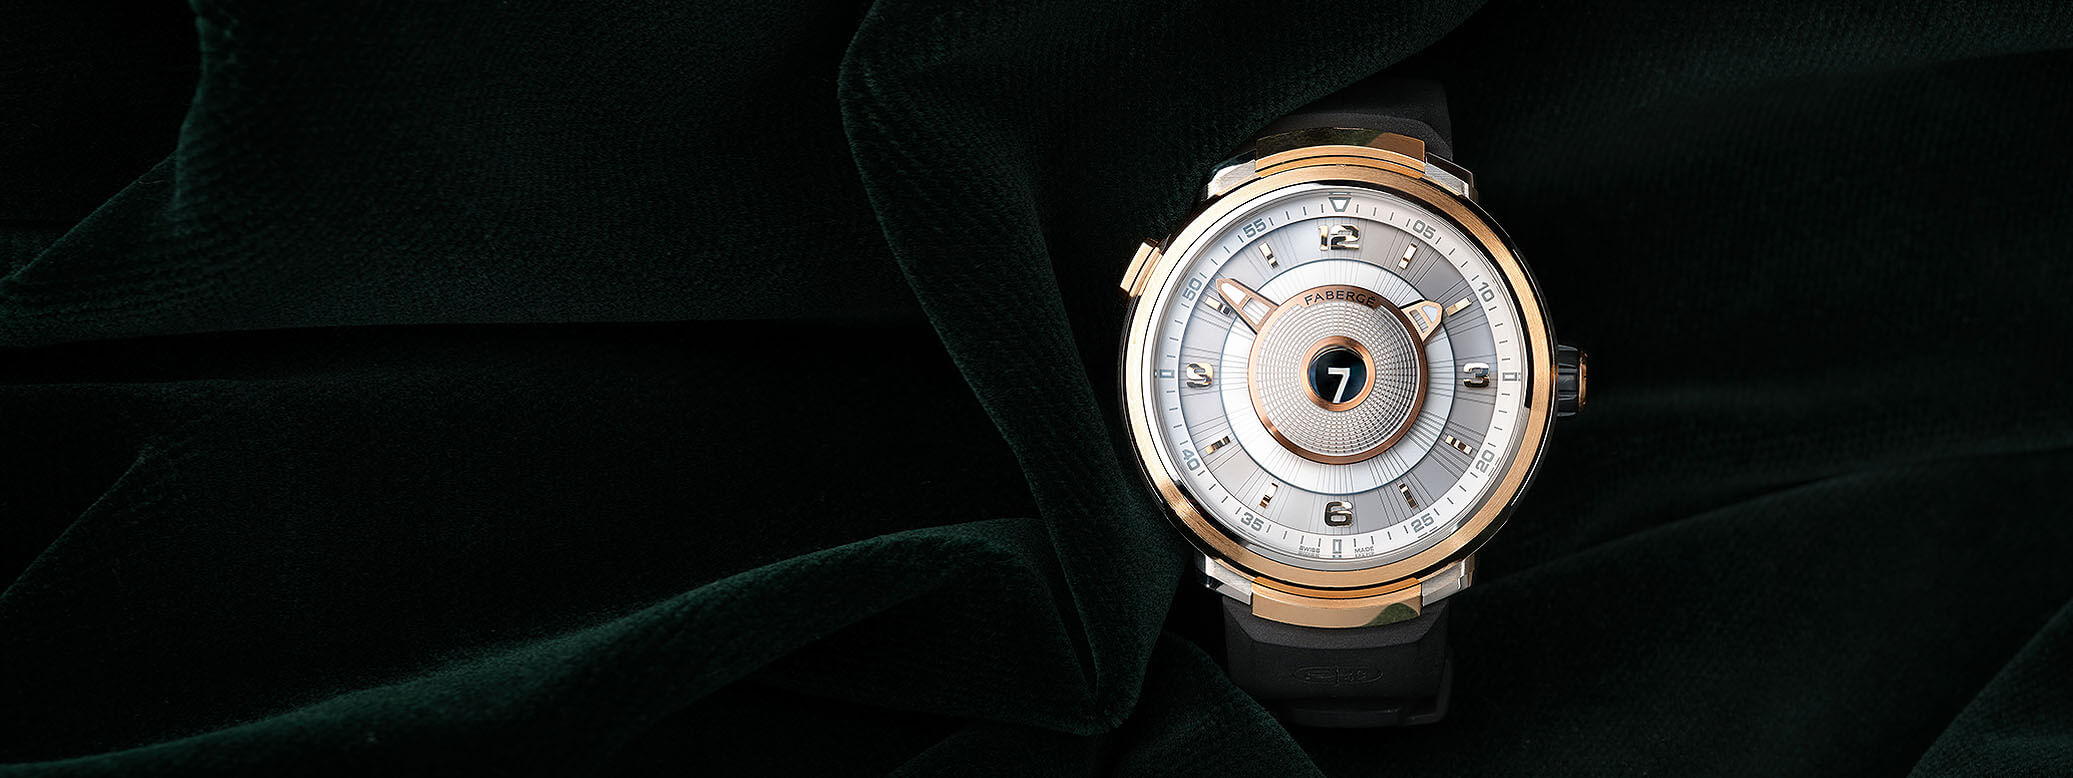 Close up view of a men's timepiece from the Visionnaire Collection – Fabergé Visionnaire Chronograph Rose Gold